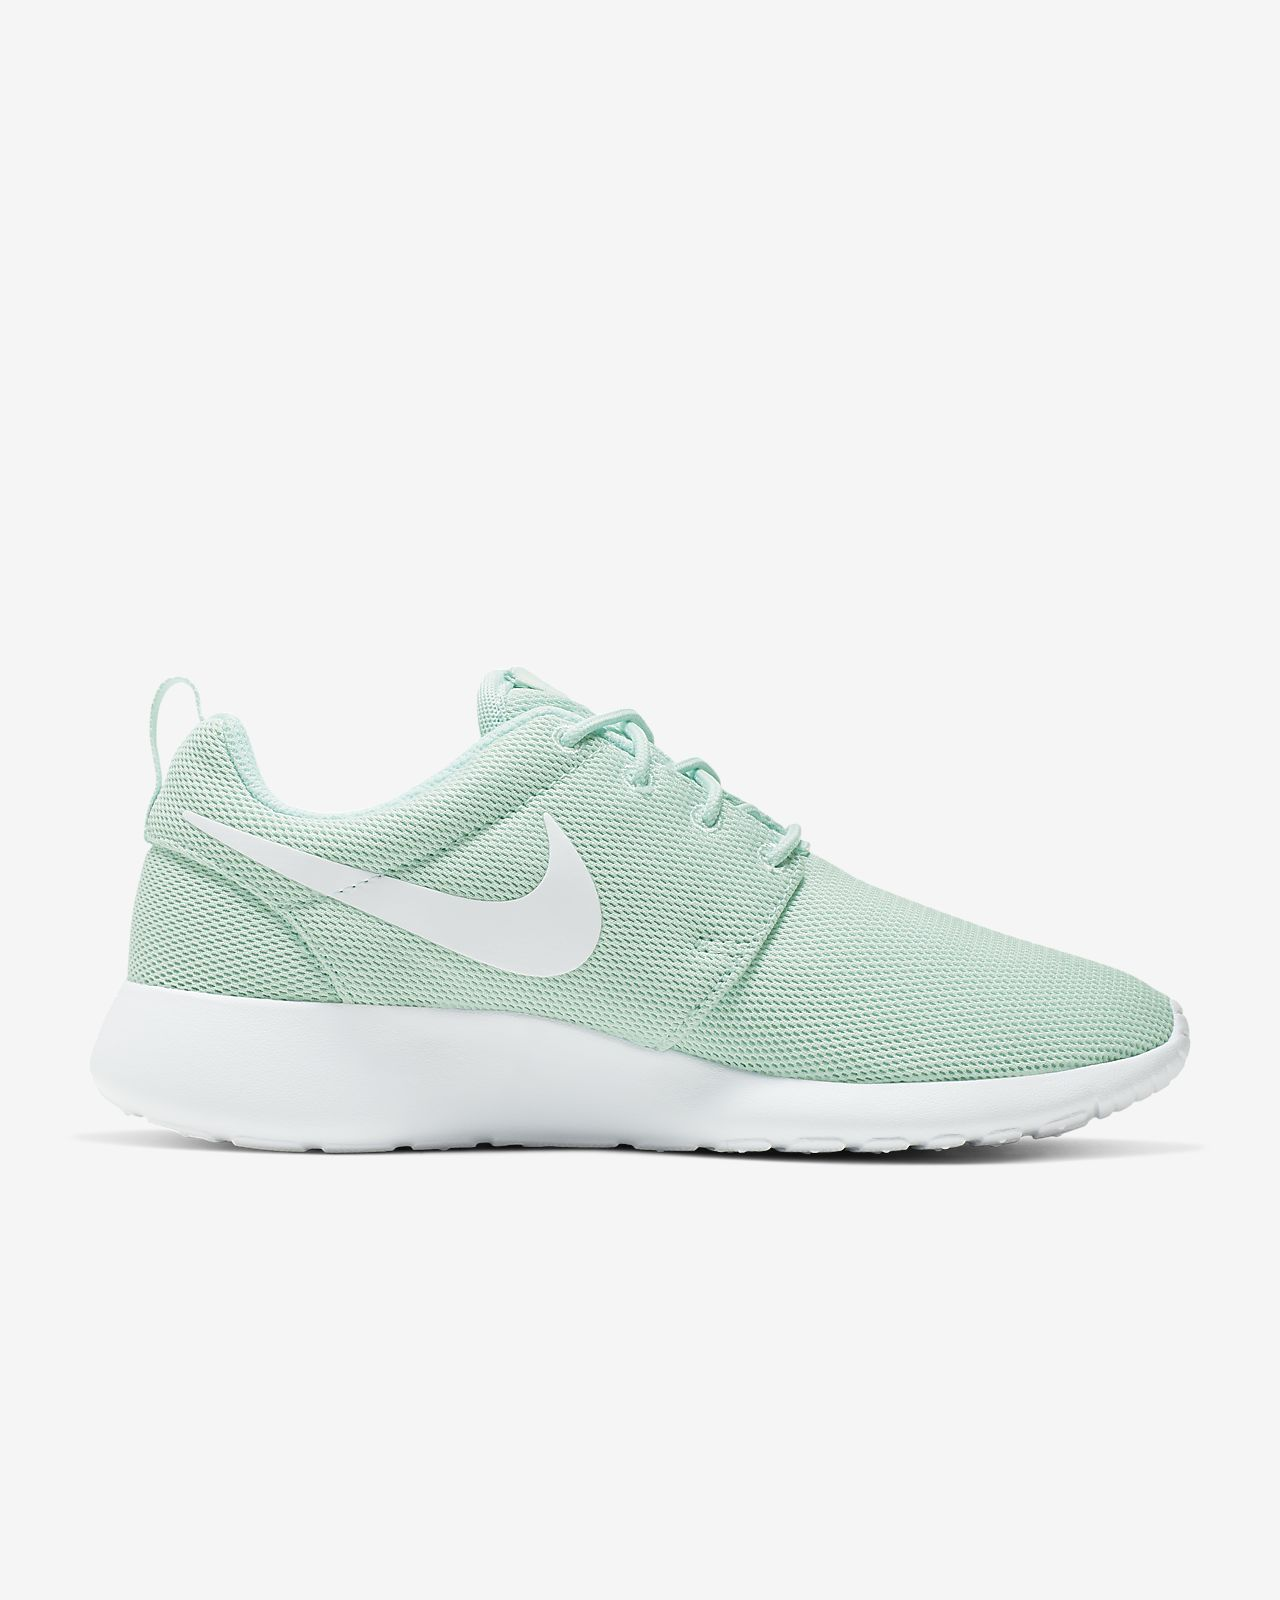 premium selection 3c9da 8ac98 ... Nike Roshe One Women s Shoe